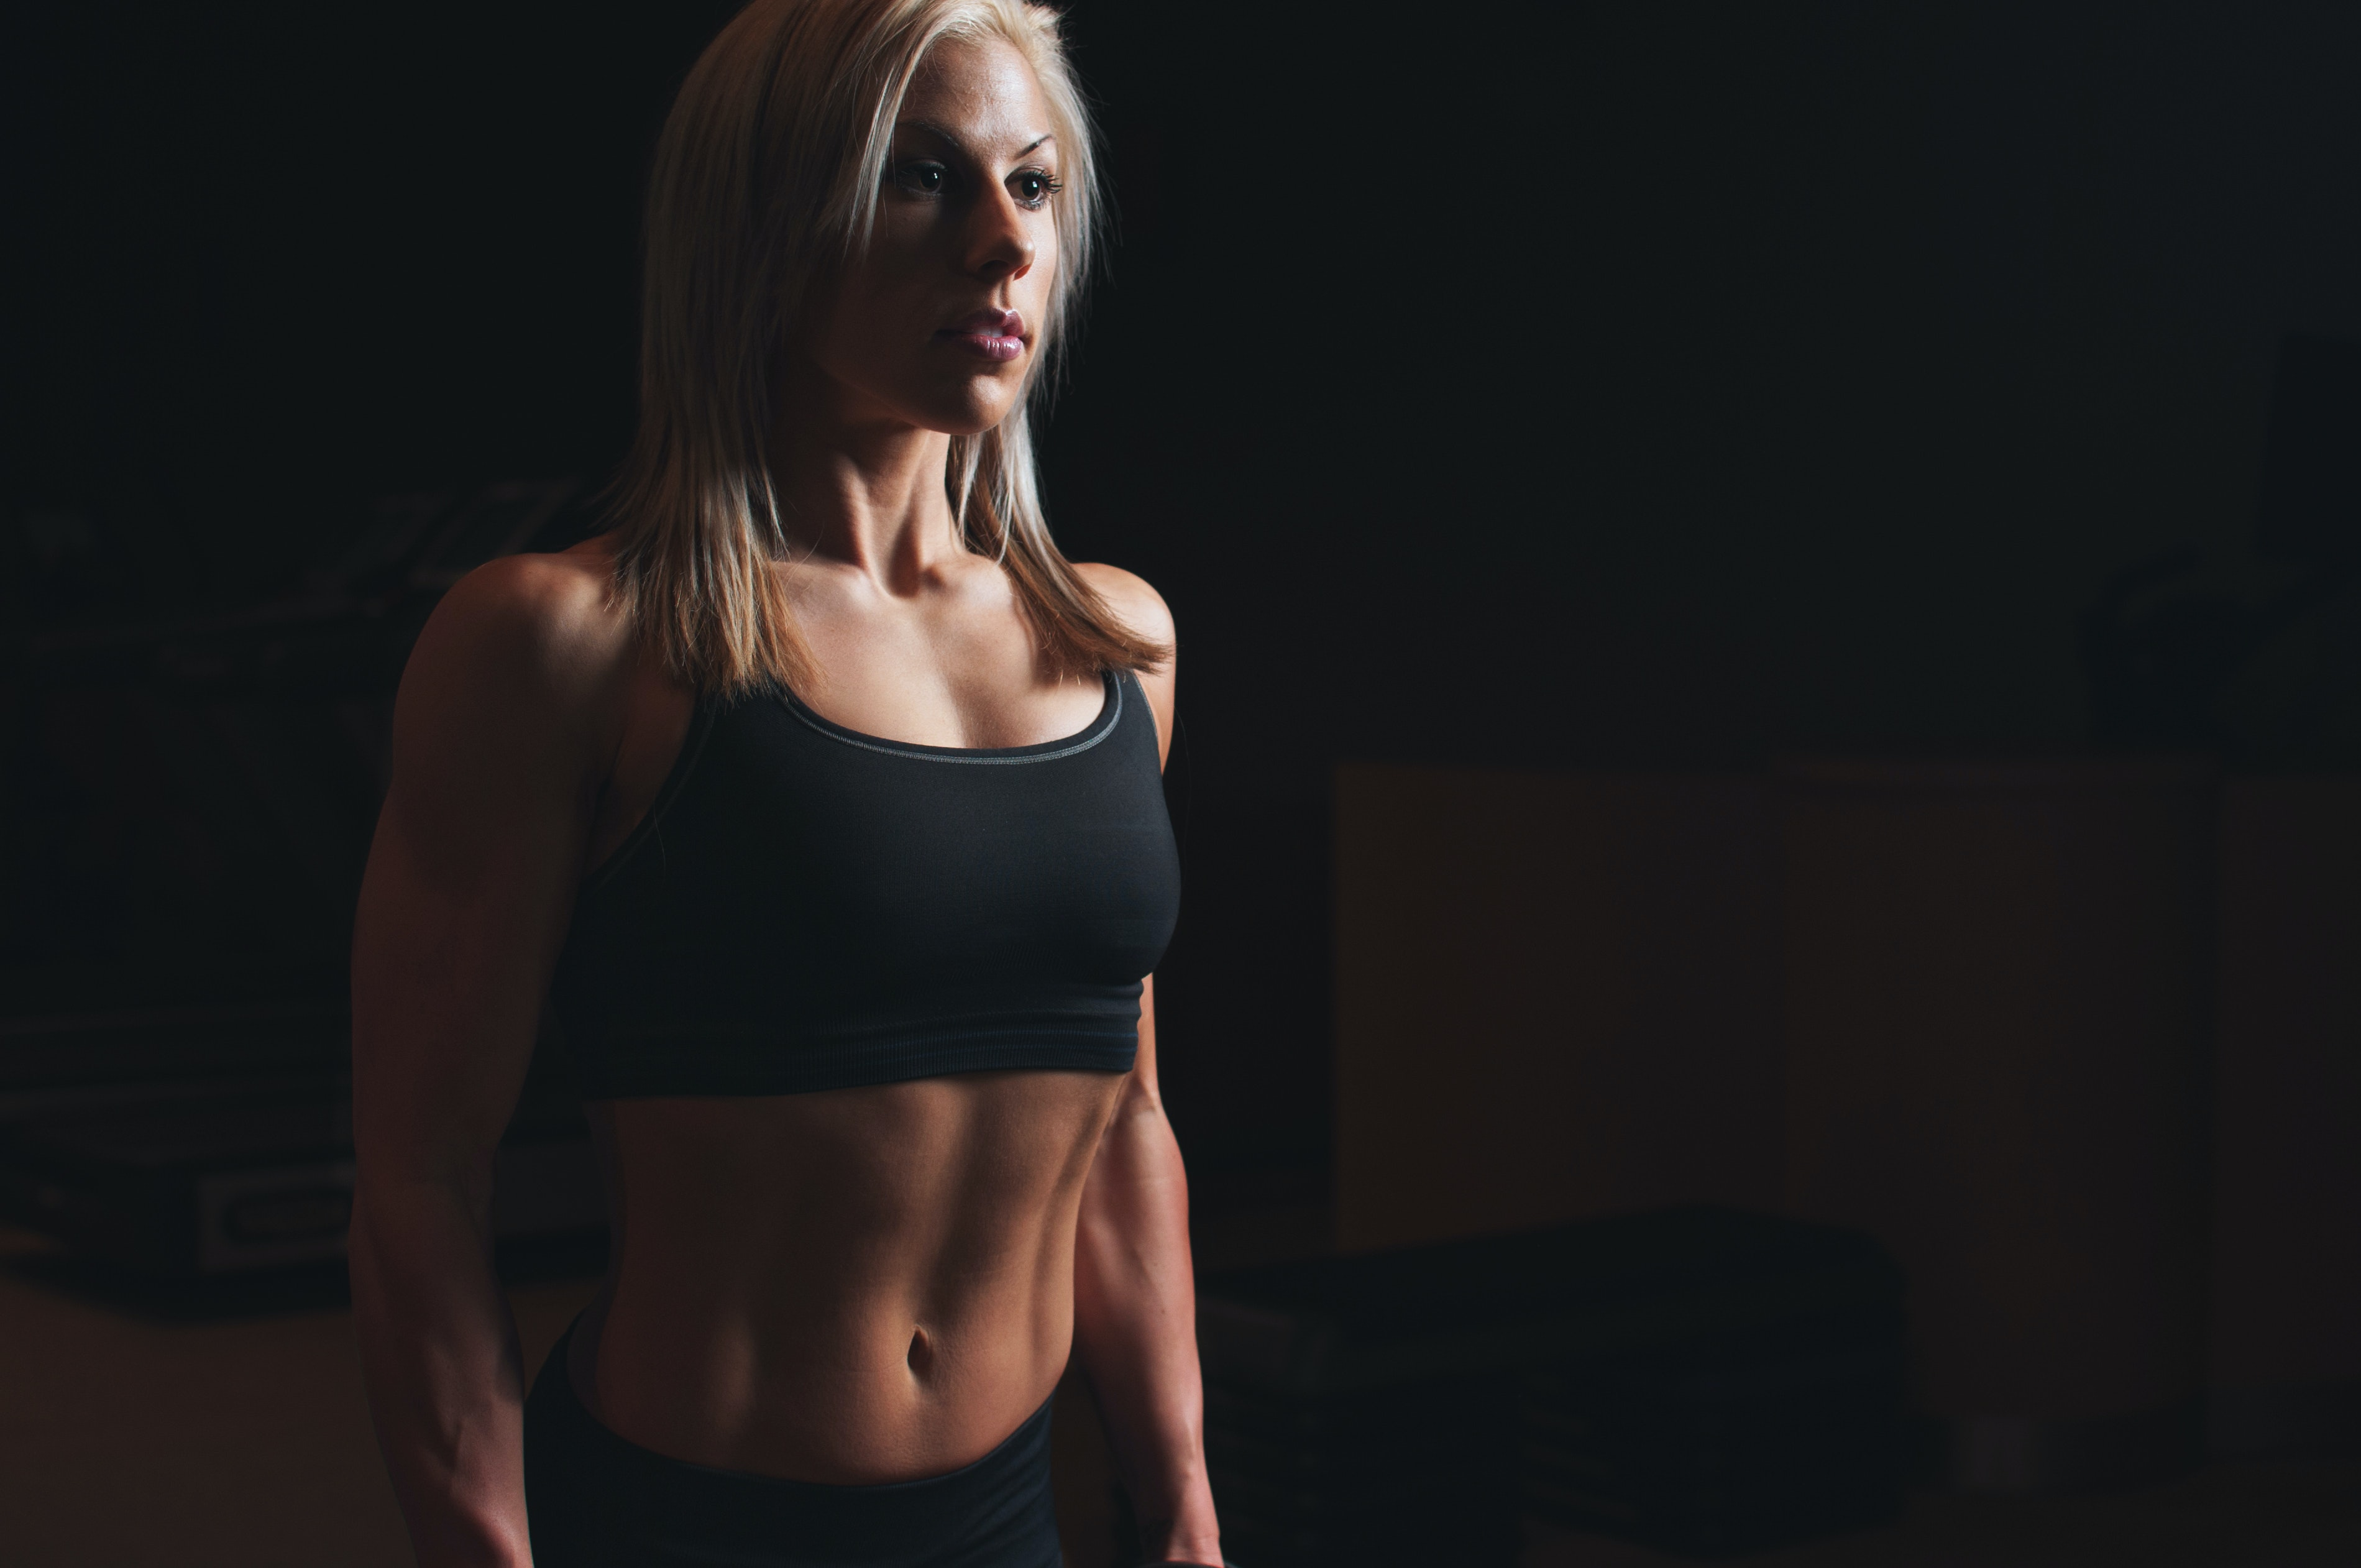 Image result for abs woman